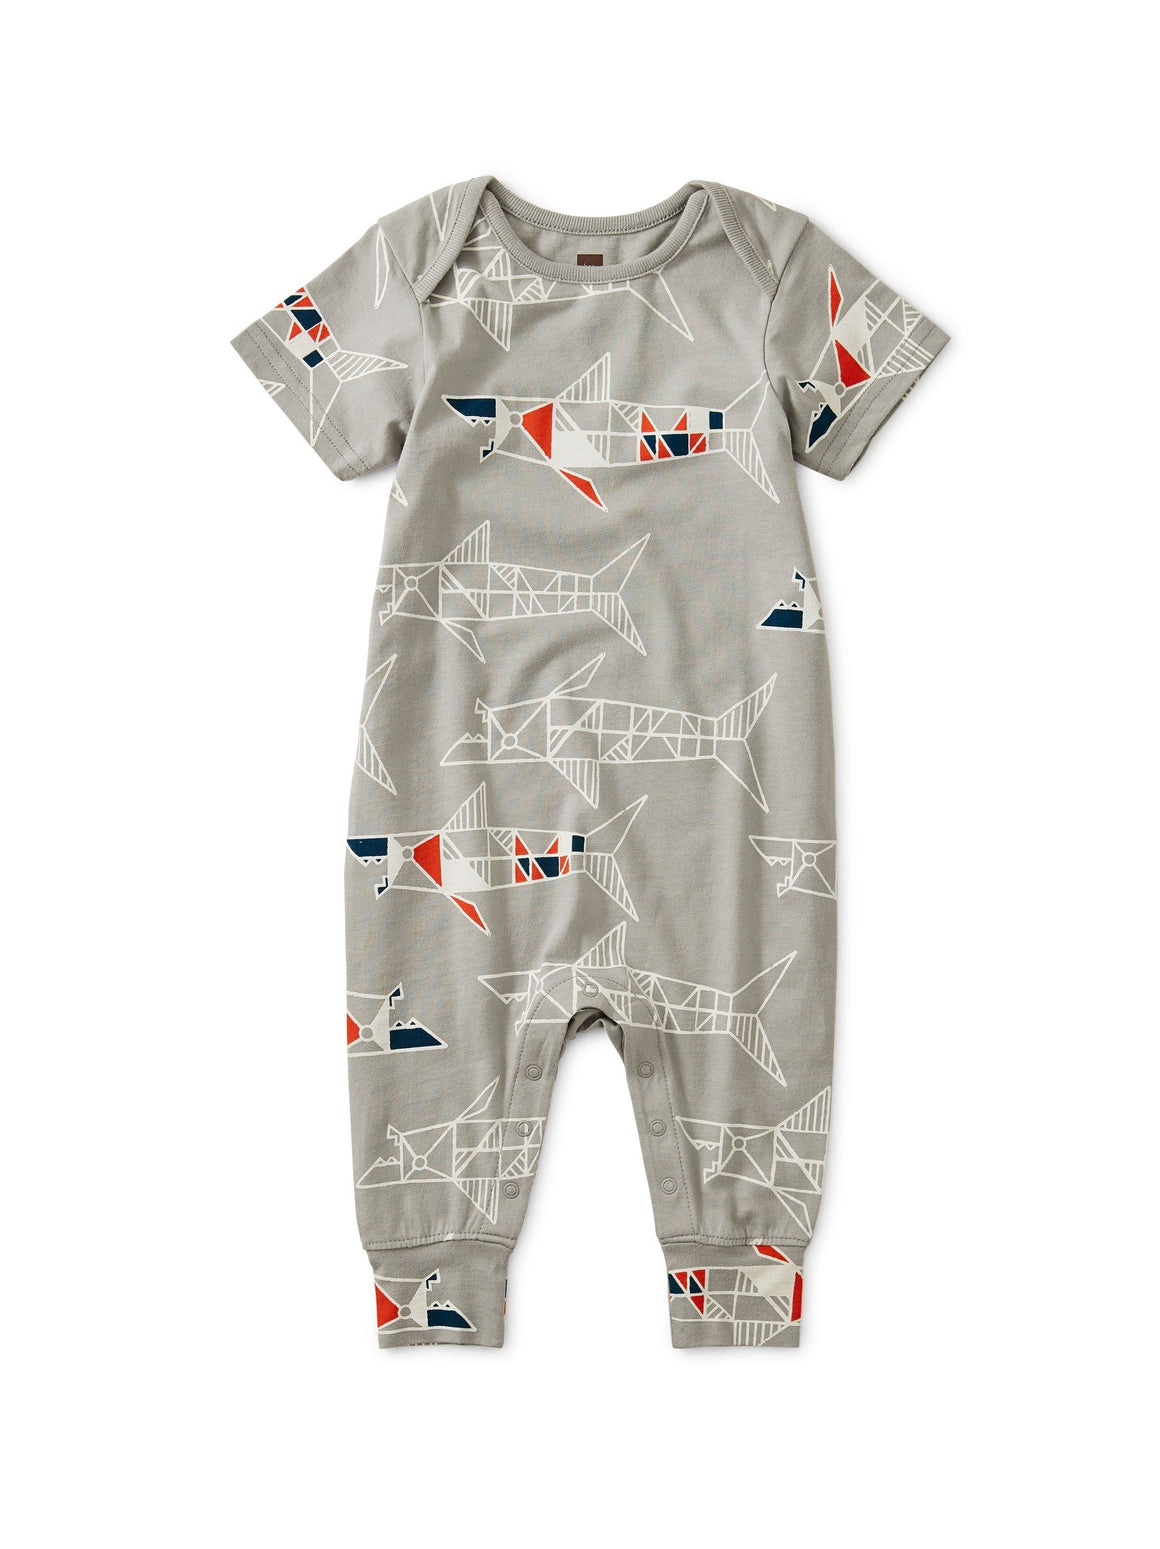 9W42509-Z40 - Tea Collection Baby Shark Short Sleeve Romper Romper Tea Collection